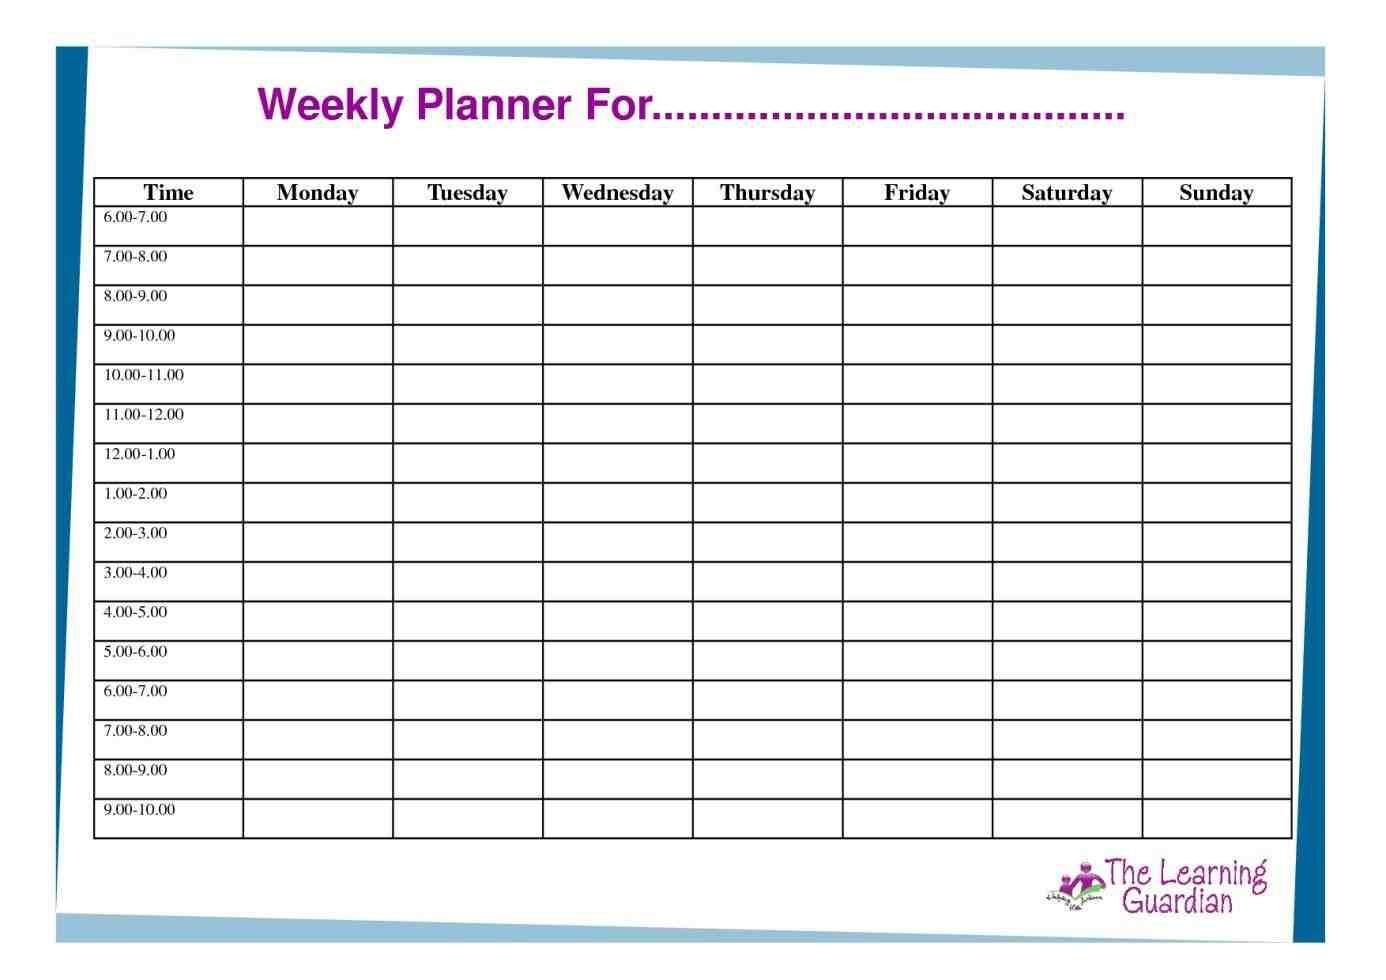 Free Hourly Schedule Template Daily Online Planner Employee